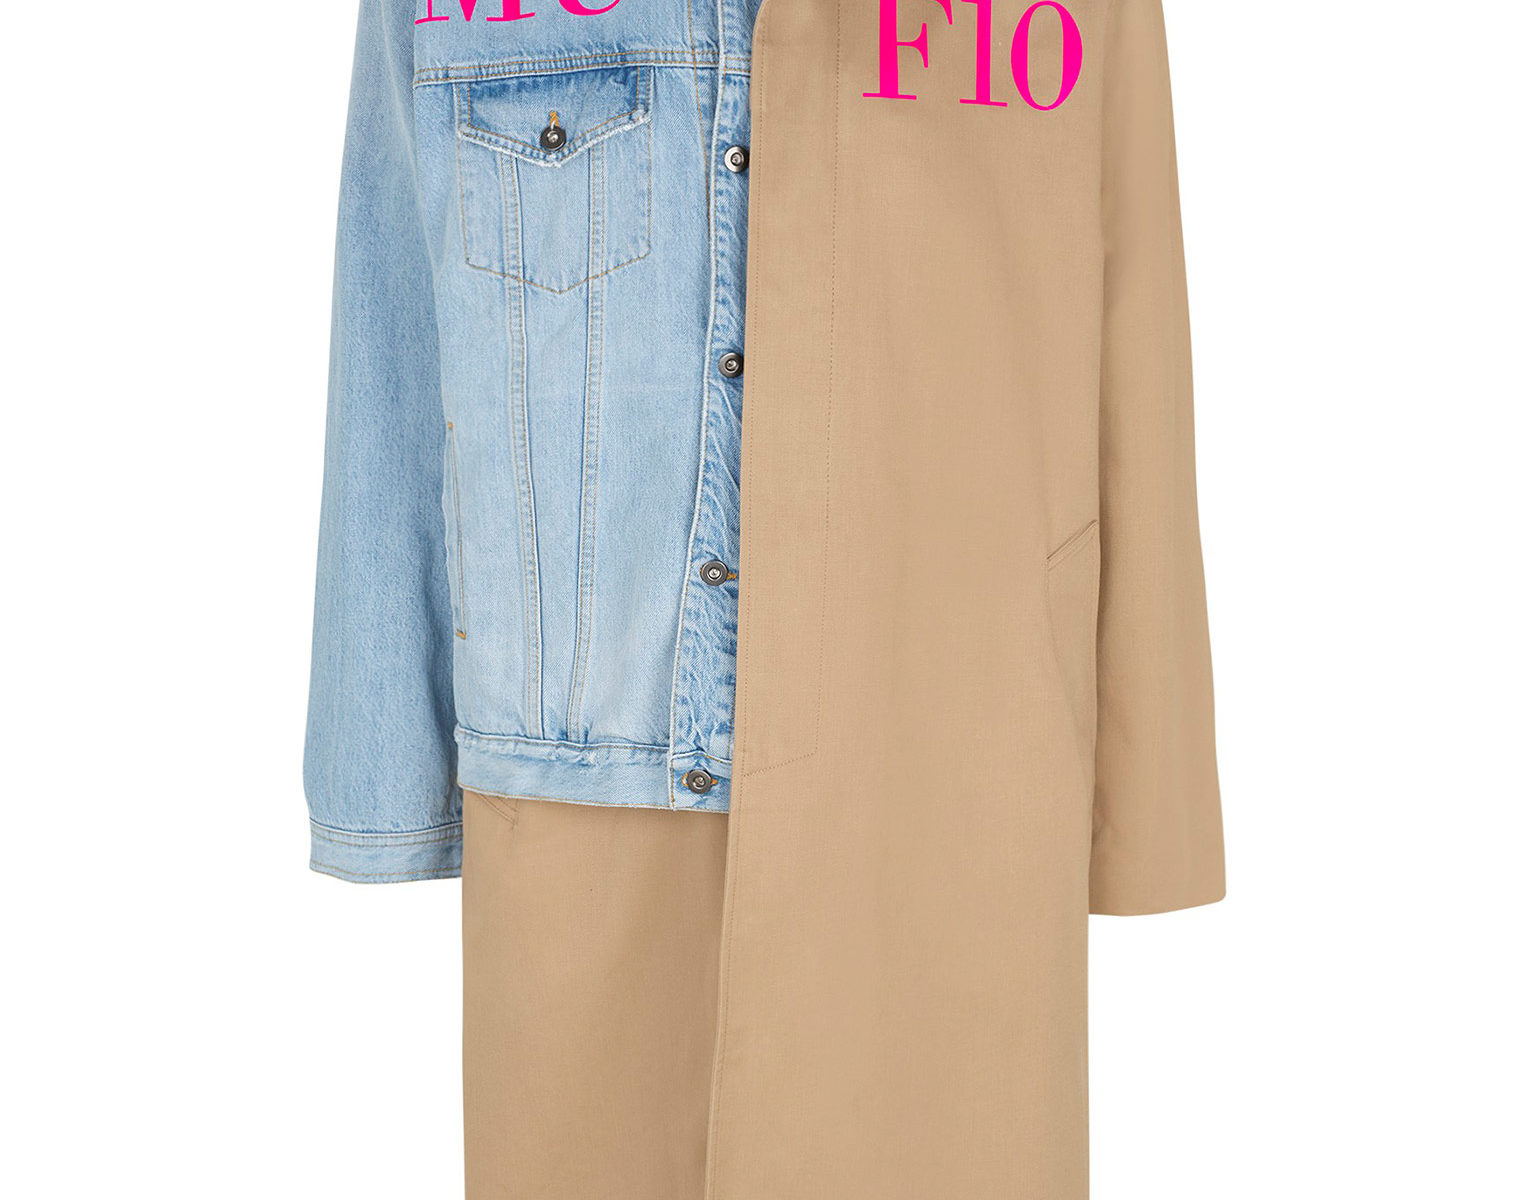 MUF10 Deconstructed Trench Denim Coat Under Pressure 1